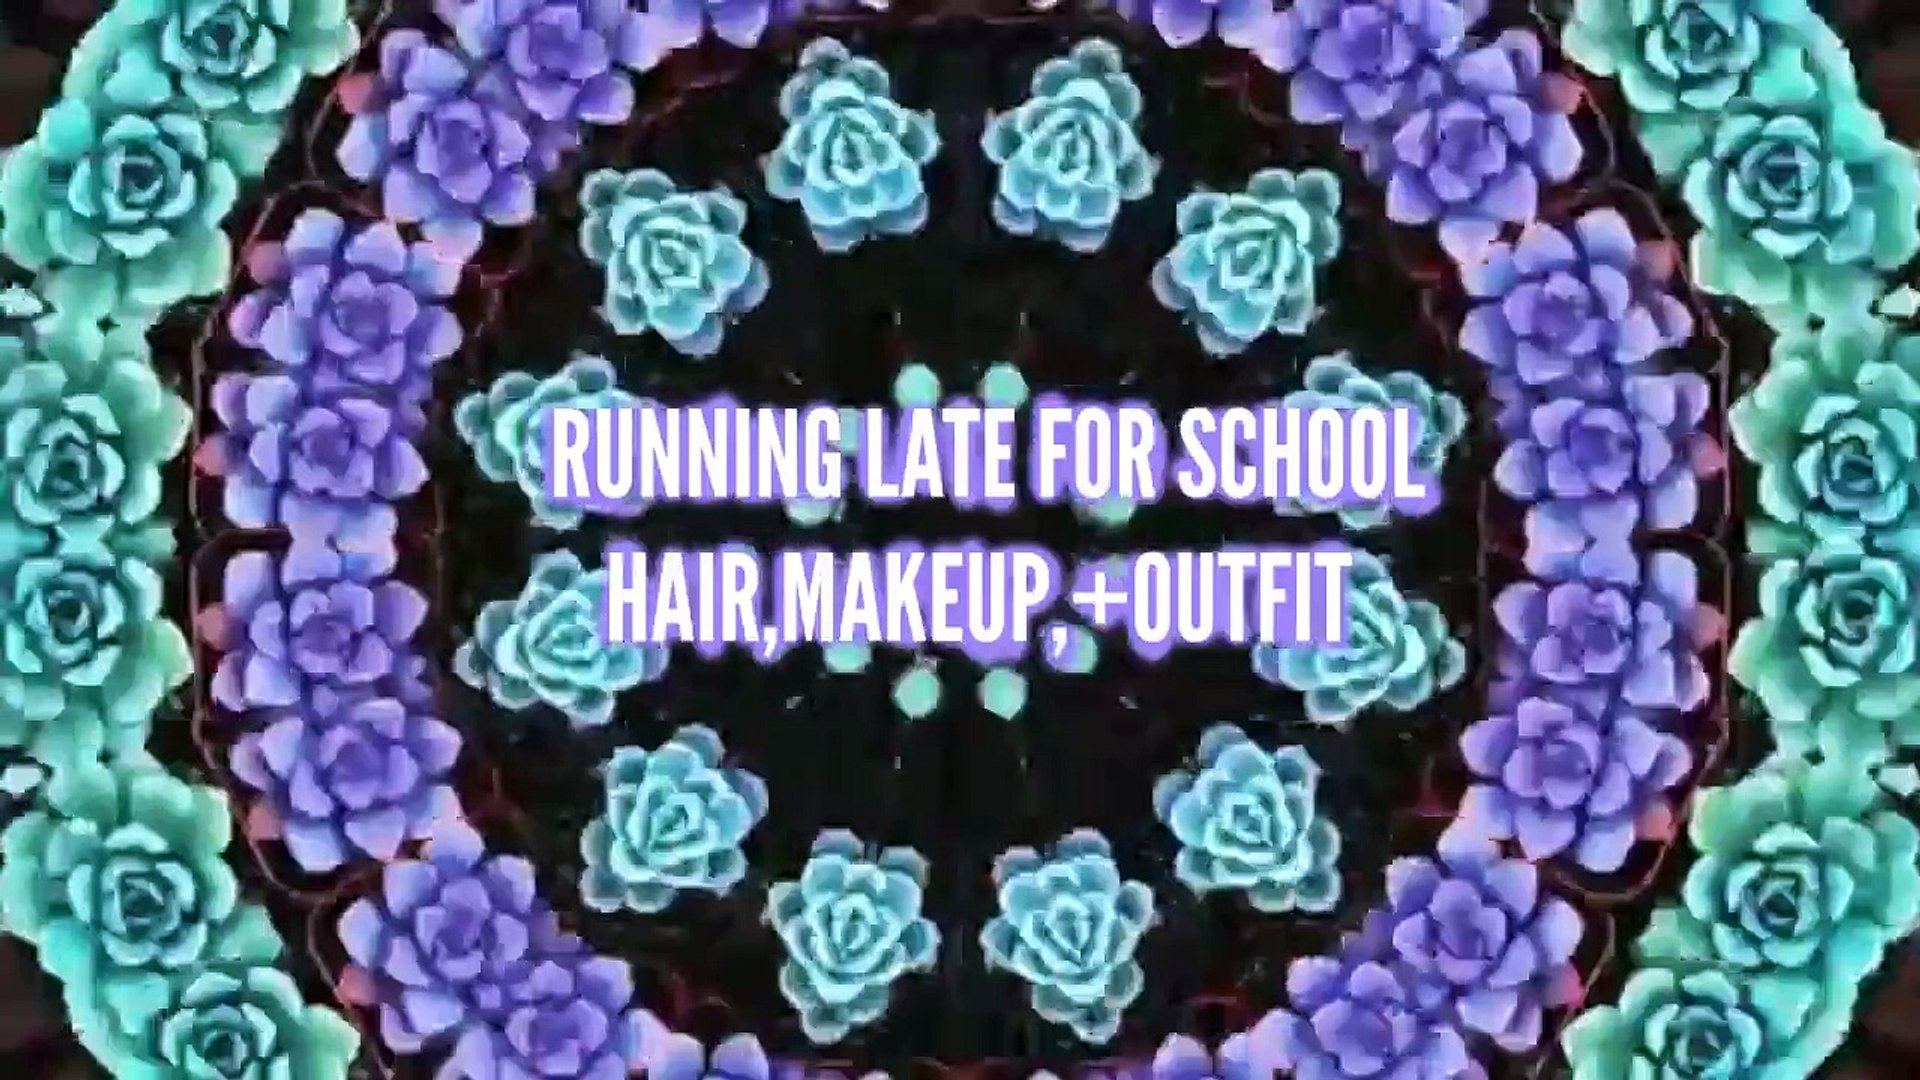 RUNNING LATE , HAIR MAKEUP, AND OUTFIT!?